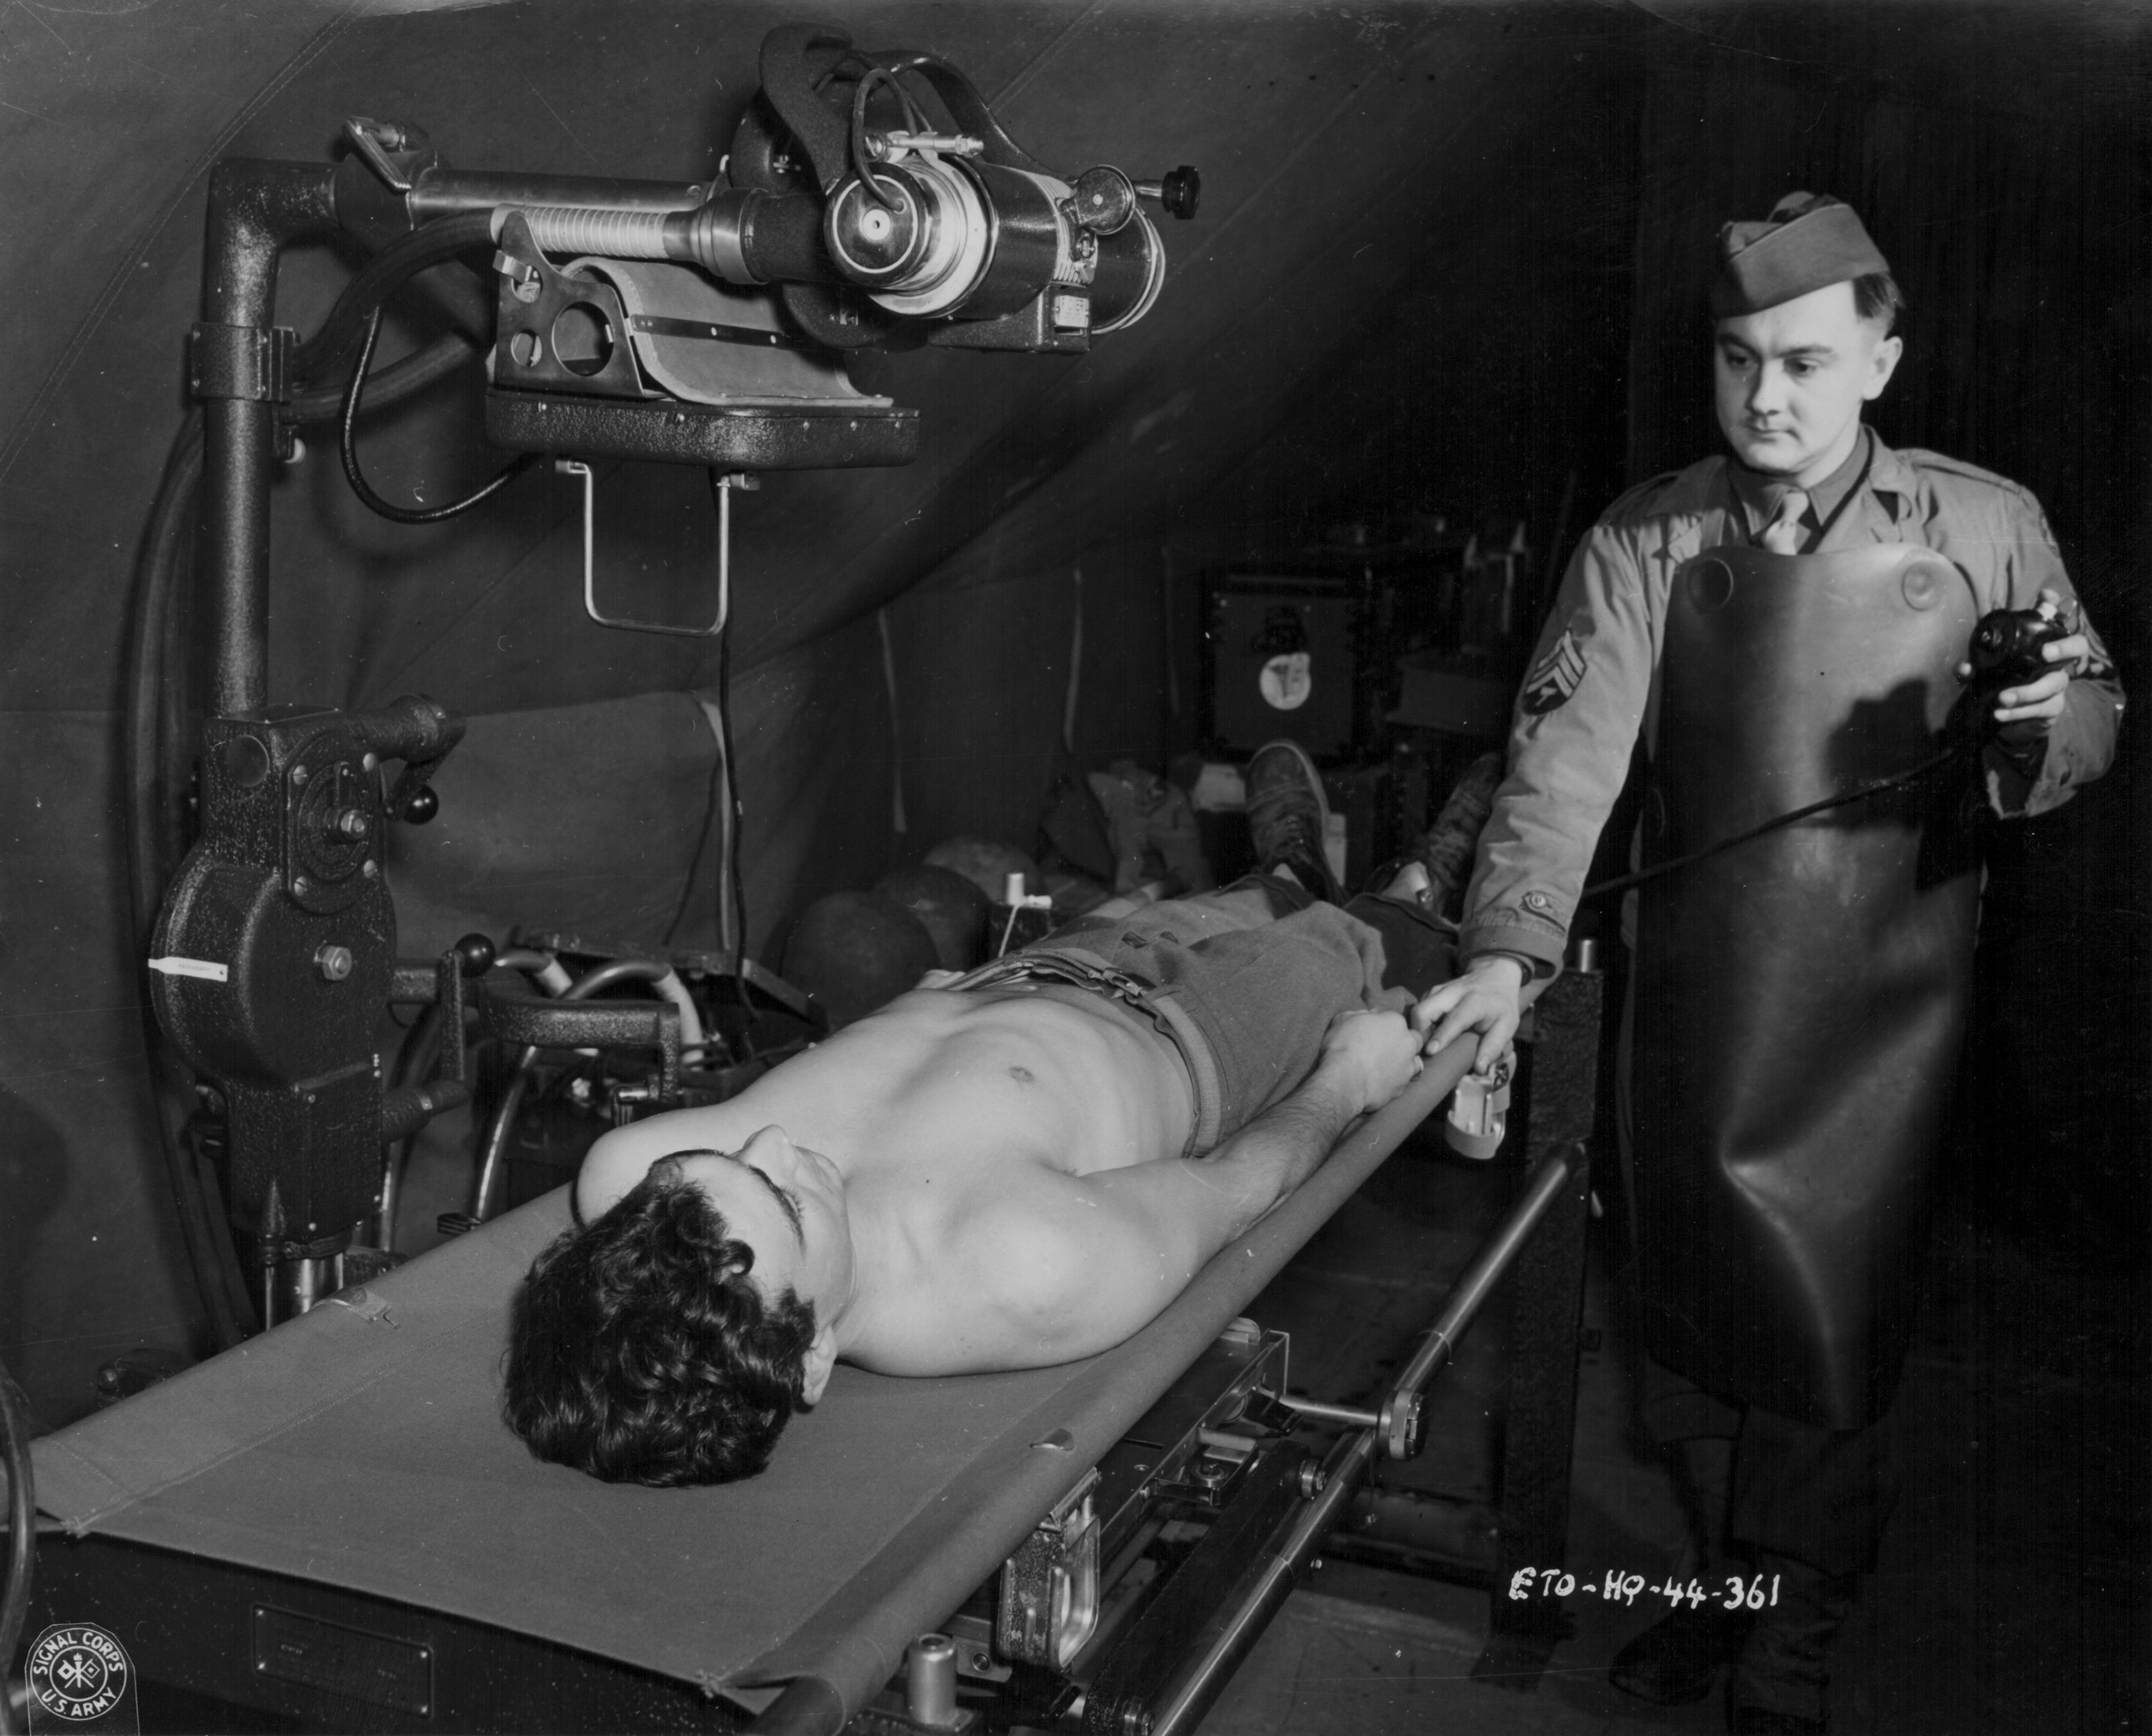 An x-ray technician with the US Medical Corps tending to a wounded soldier during World War Two, circa 1941-1945.